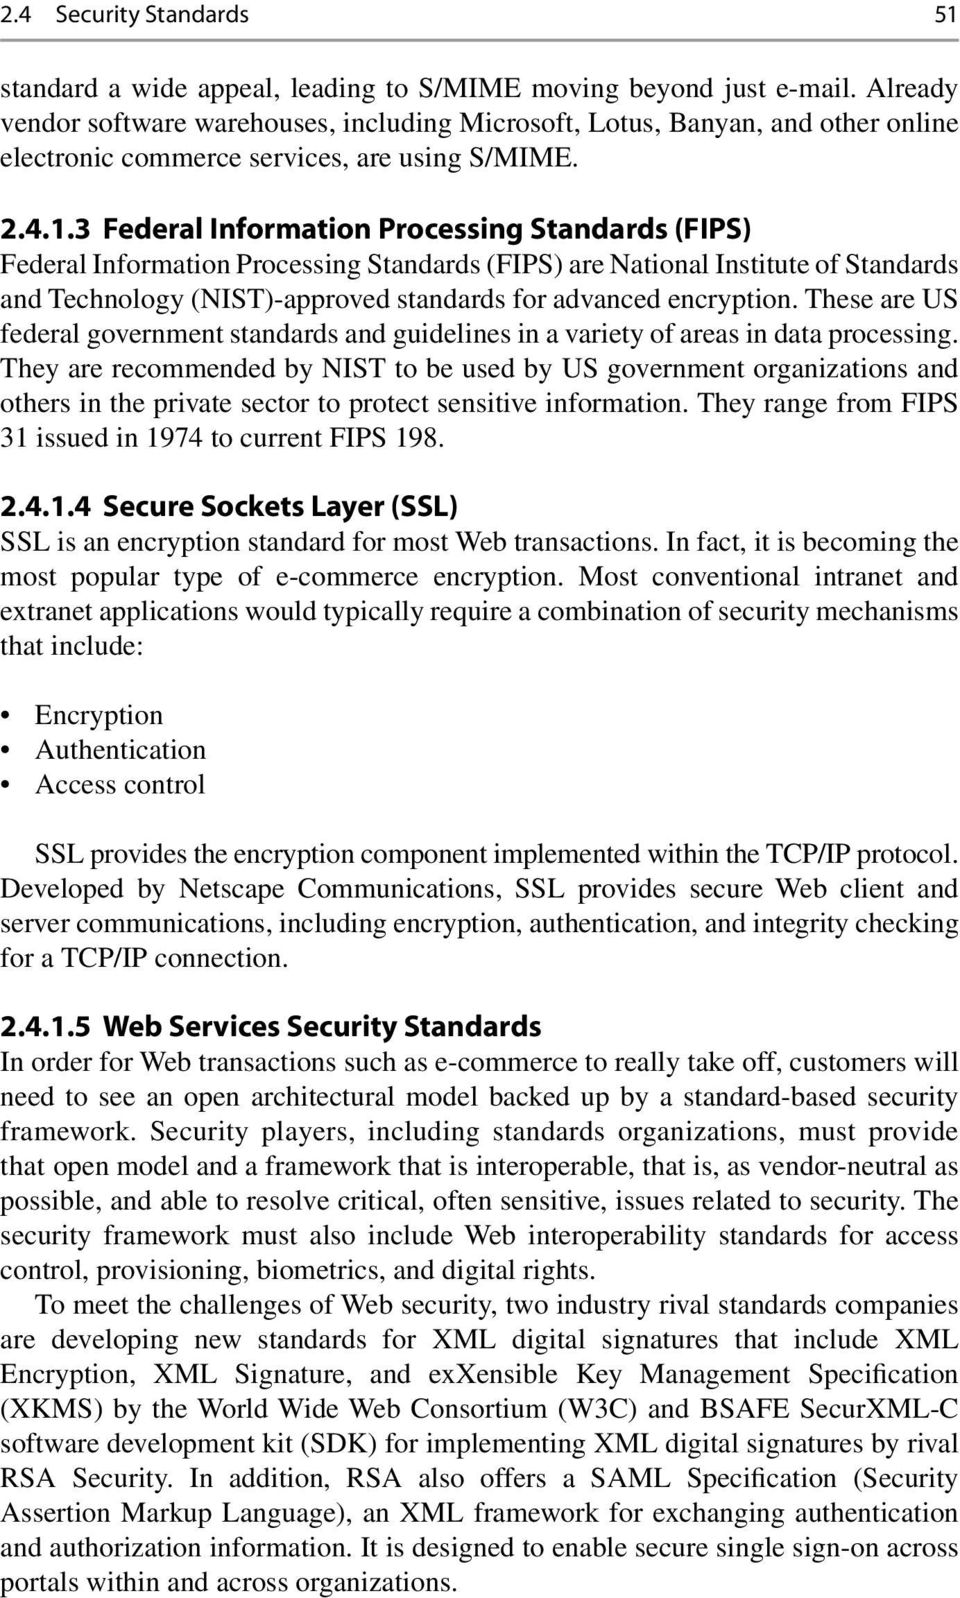 3 Federal Information Processing Standards (FIPS) Federal Information Processing Standards (FIPS) are National Institute of Standards and Technology (NIST)-approved standards for advanced encryption.